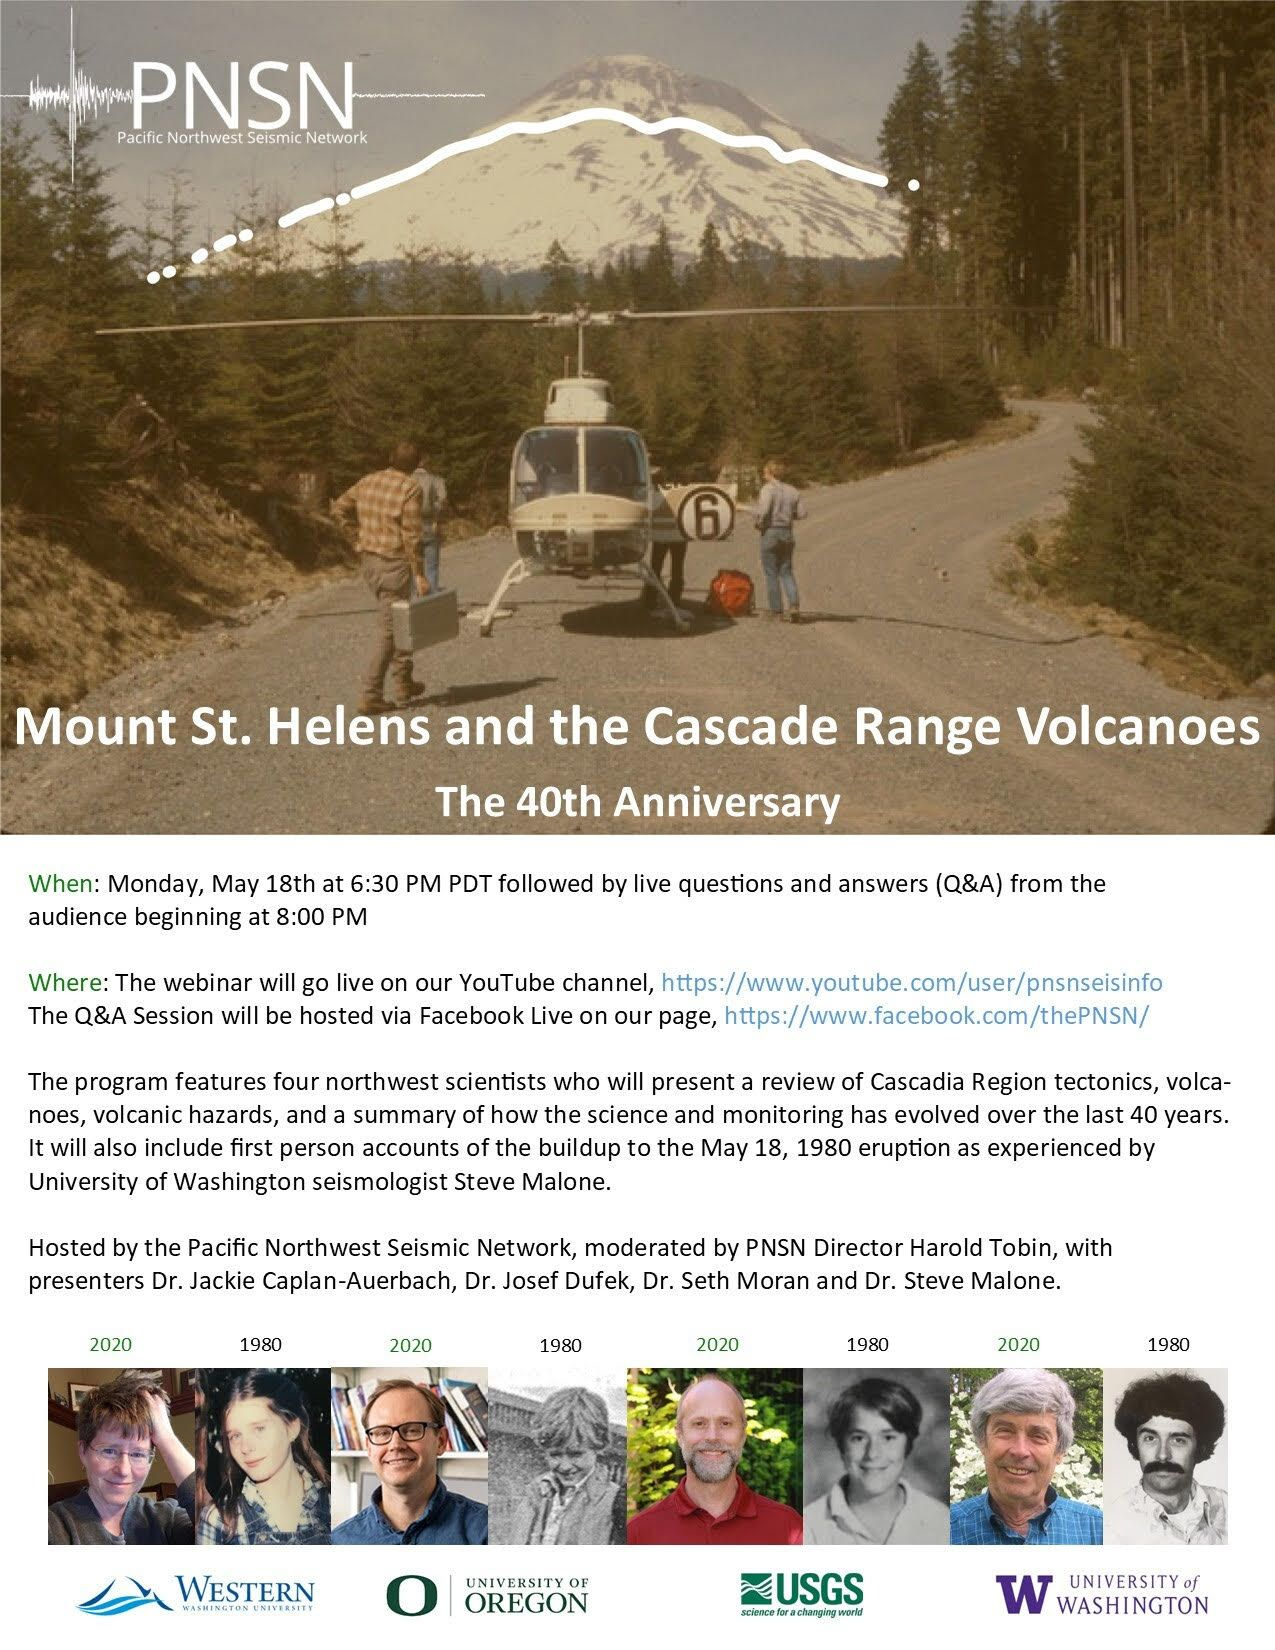 Mount St. Helens and the Cascade Range Volcanoes